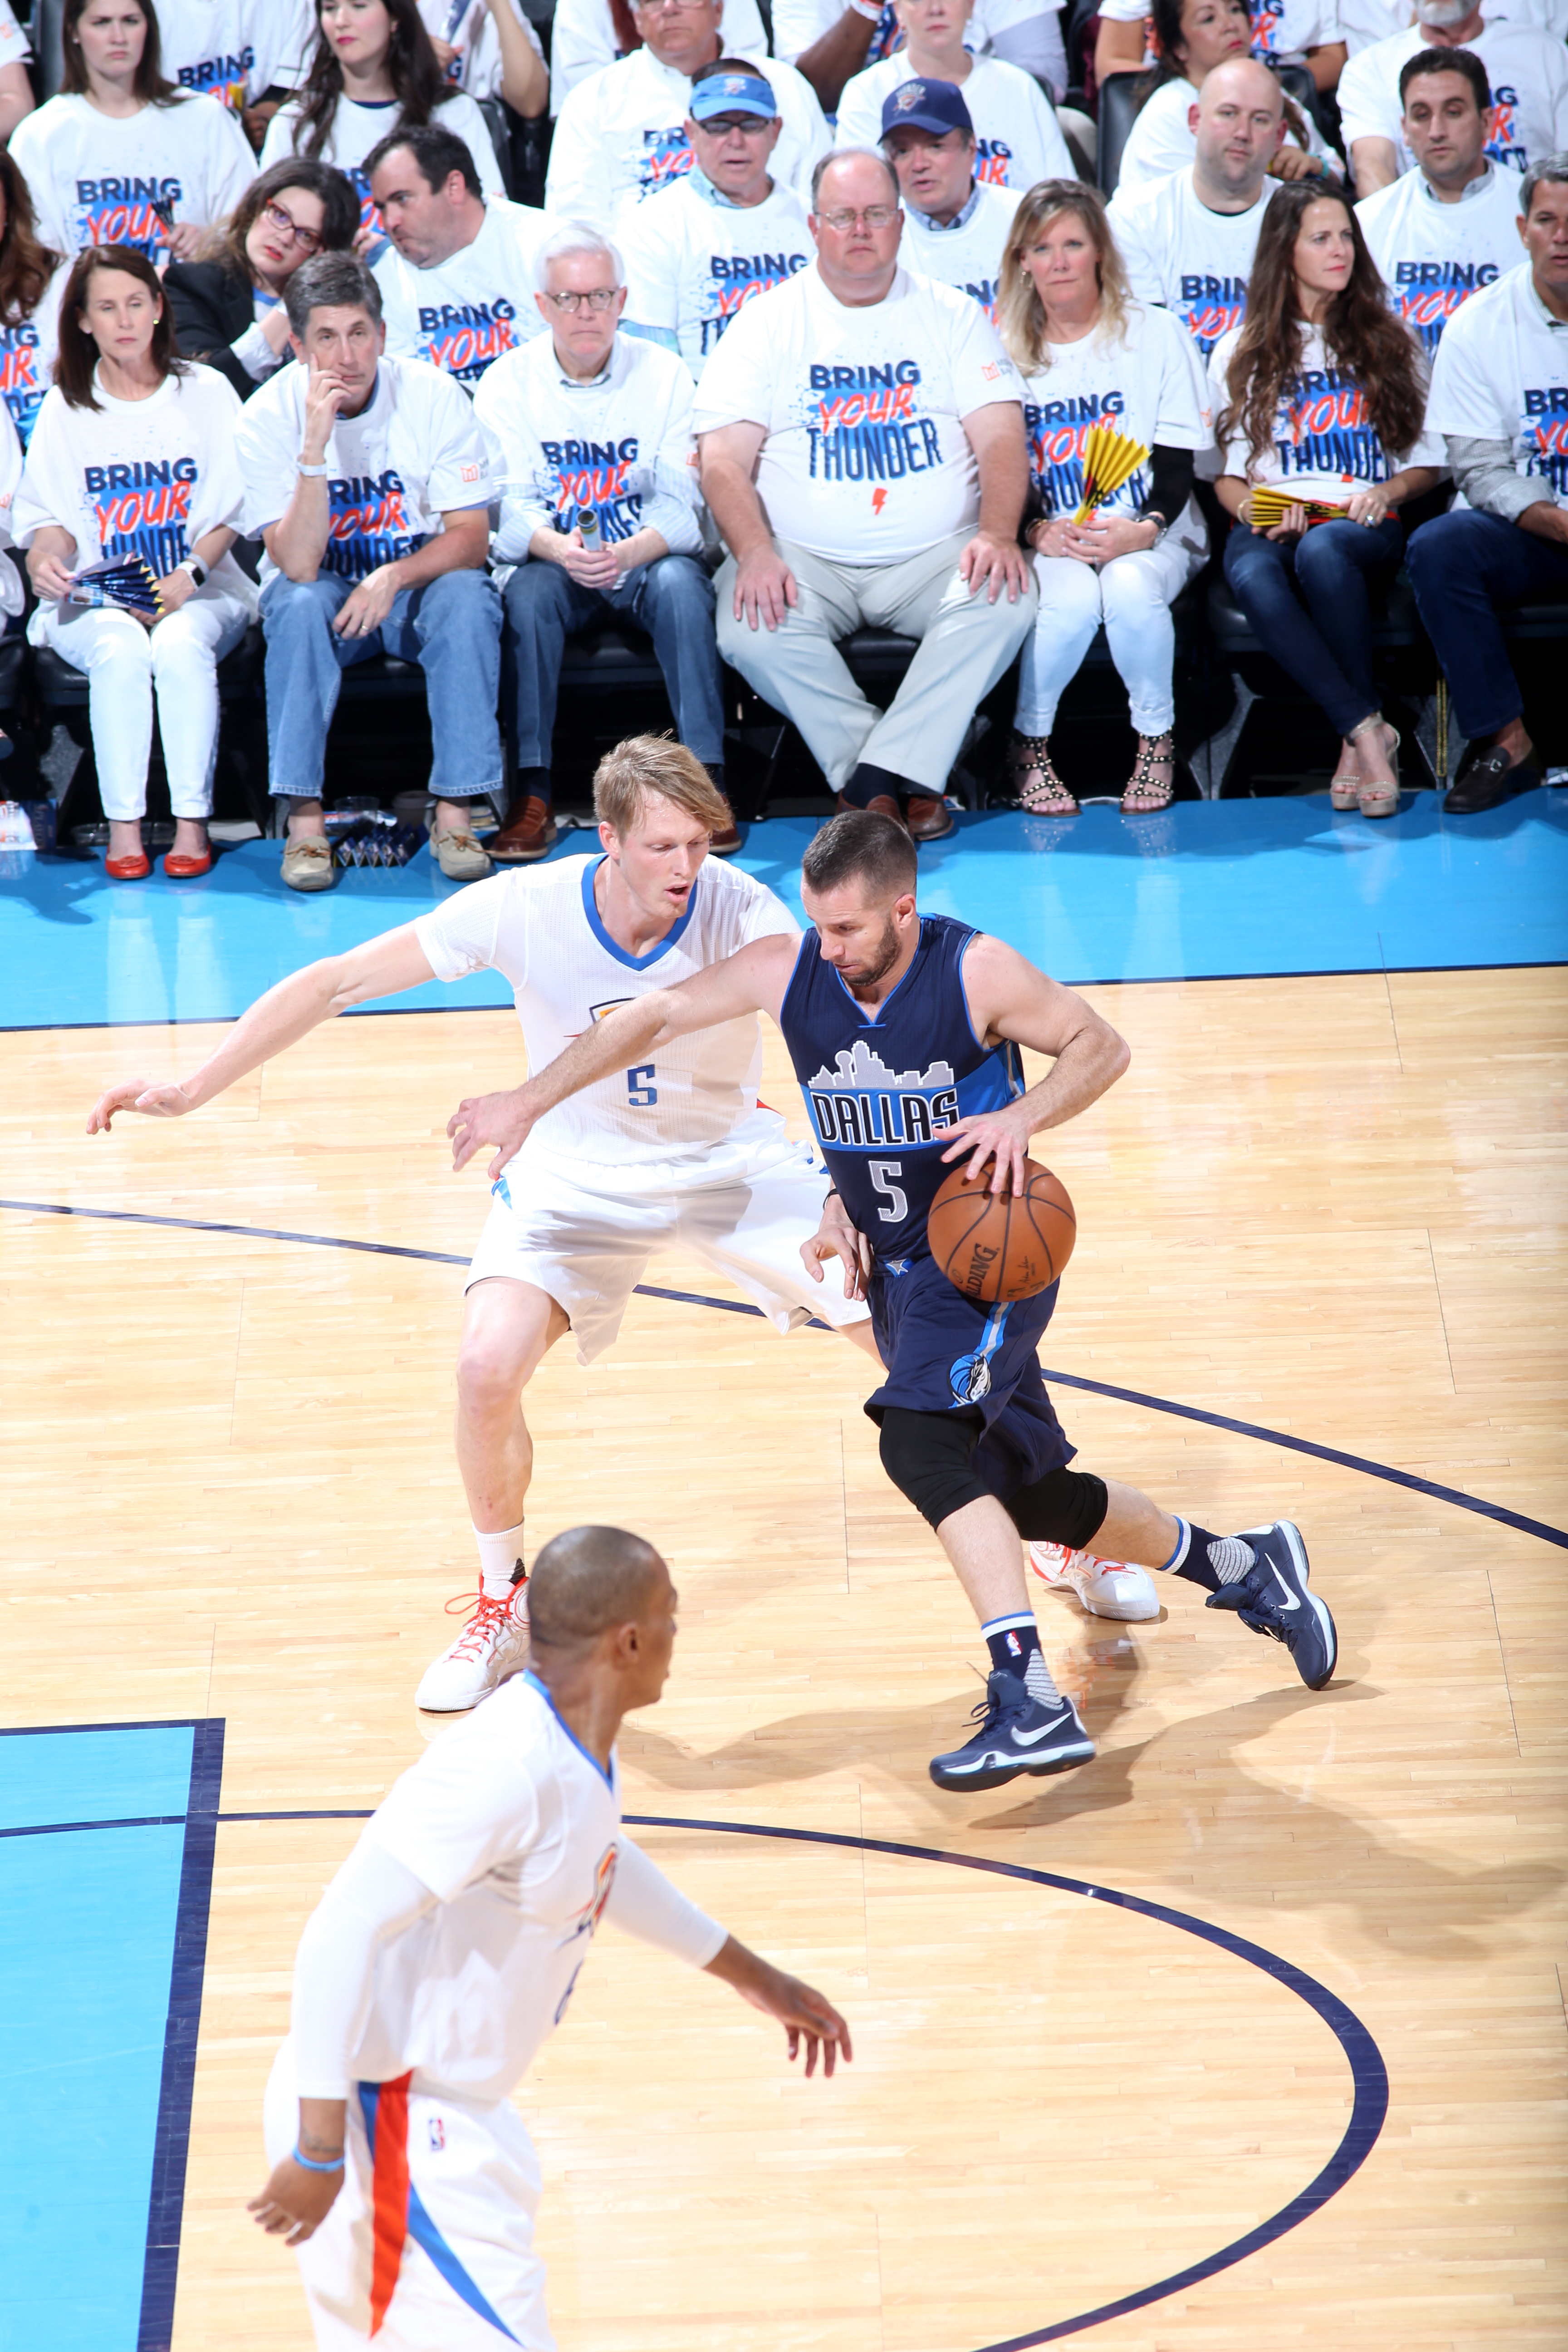 OKLAHOMA CITY, OK - APRIL 16:  J.J. Barea #5 of the Dallas Mavericks drives to the basket against Kyle Singler #5 of the Oklahoma City Thunder in Game One of the Western Conference Quarterfinals during the 2016 NBA Playoffs on April 16, 2016 at Chesapeake